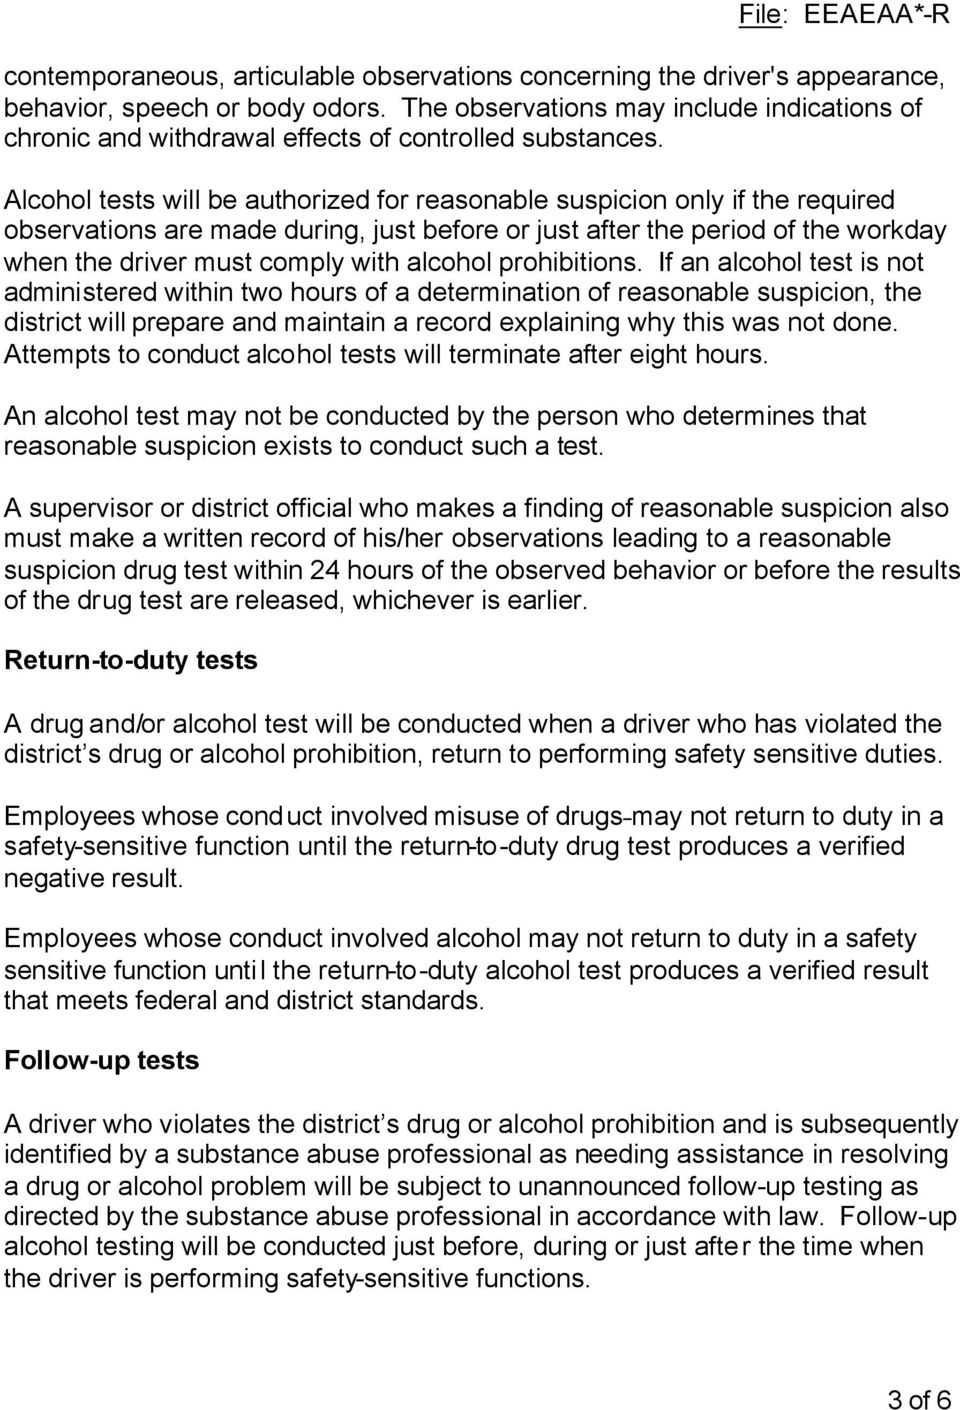 Alcohol tests will be authorized for reasonable suspicion only if the required observations are made during, just before or just after the period of the workday when the driver must comply with